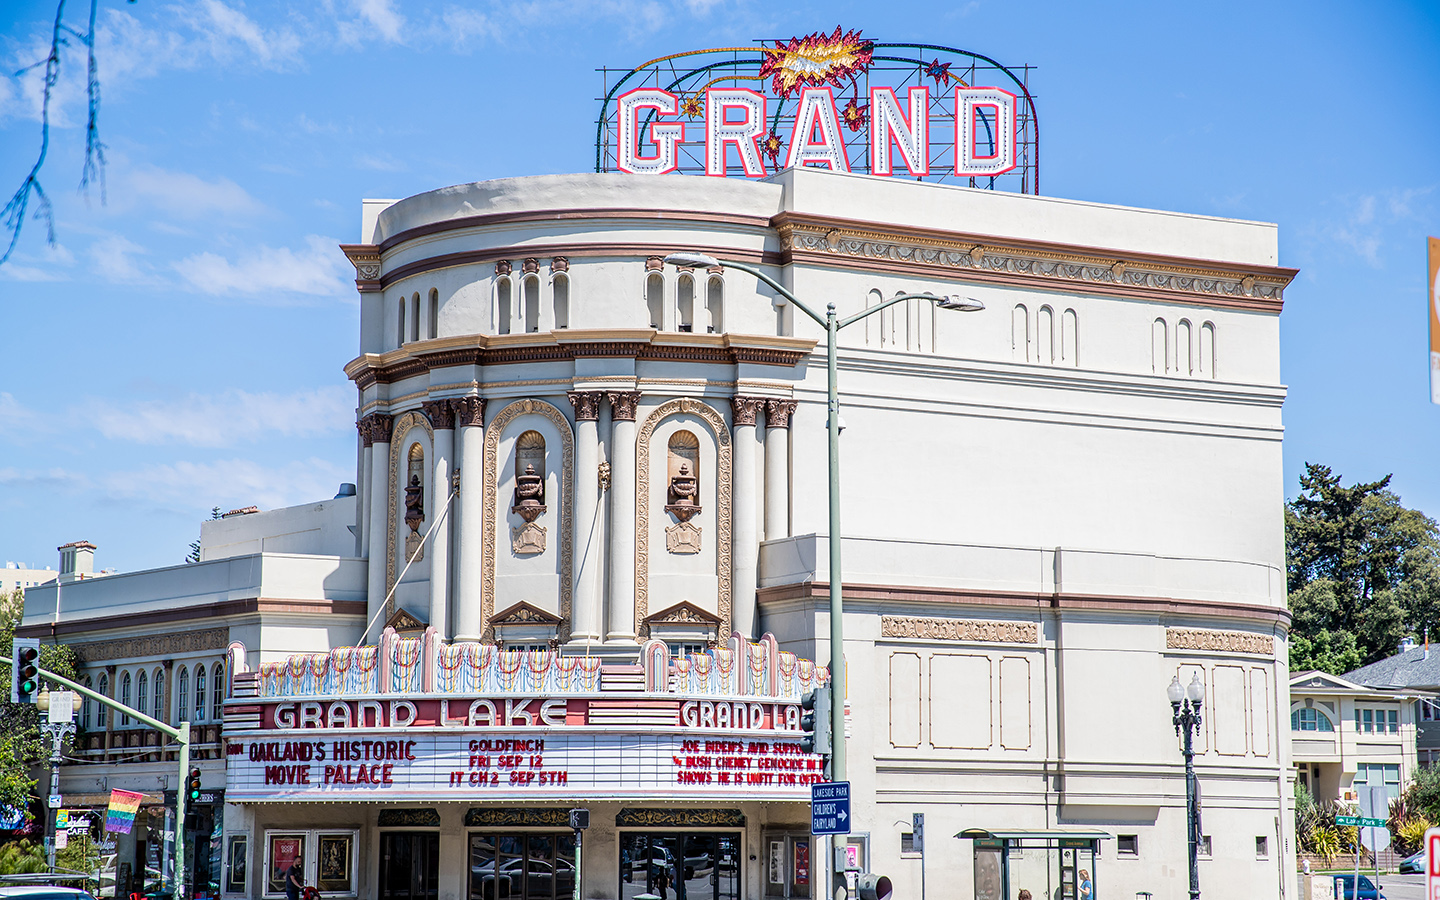 Outside view of the Grand Lake Theatre in Oakland, California